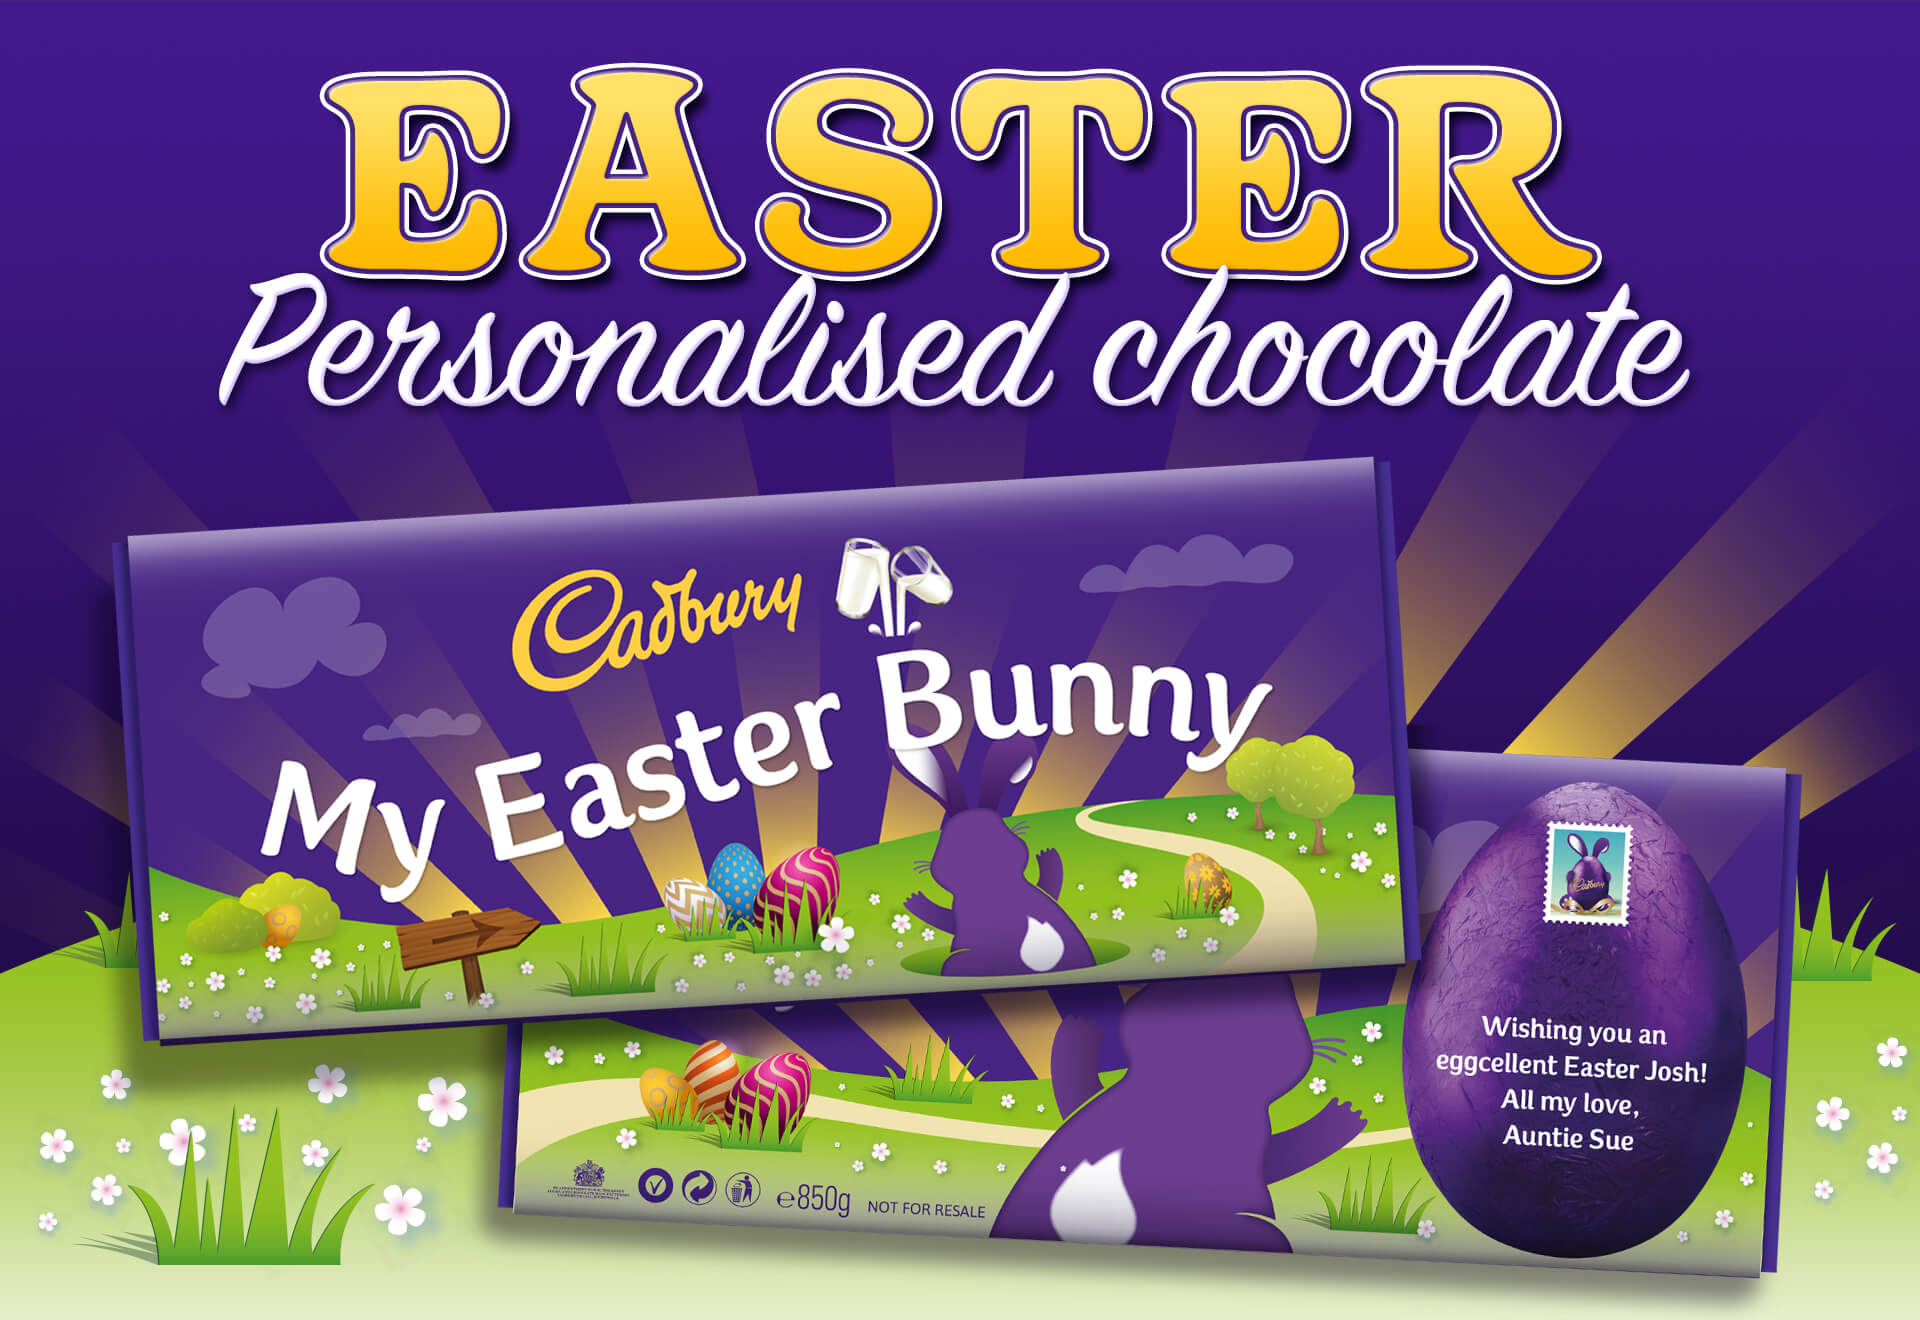 Cadbury Easter personalised chocolate, create something unique